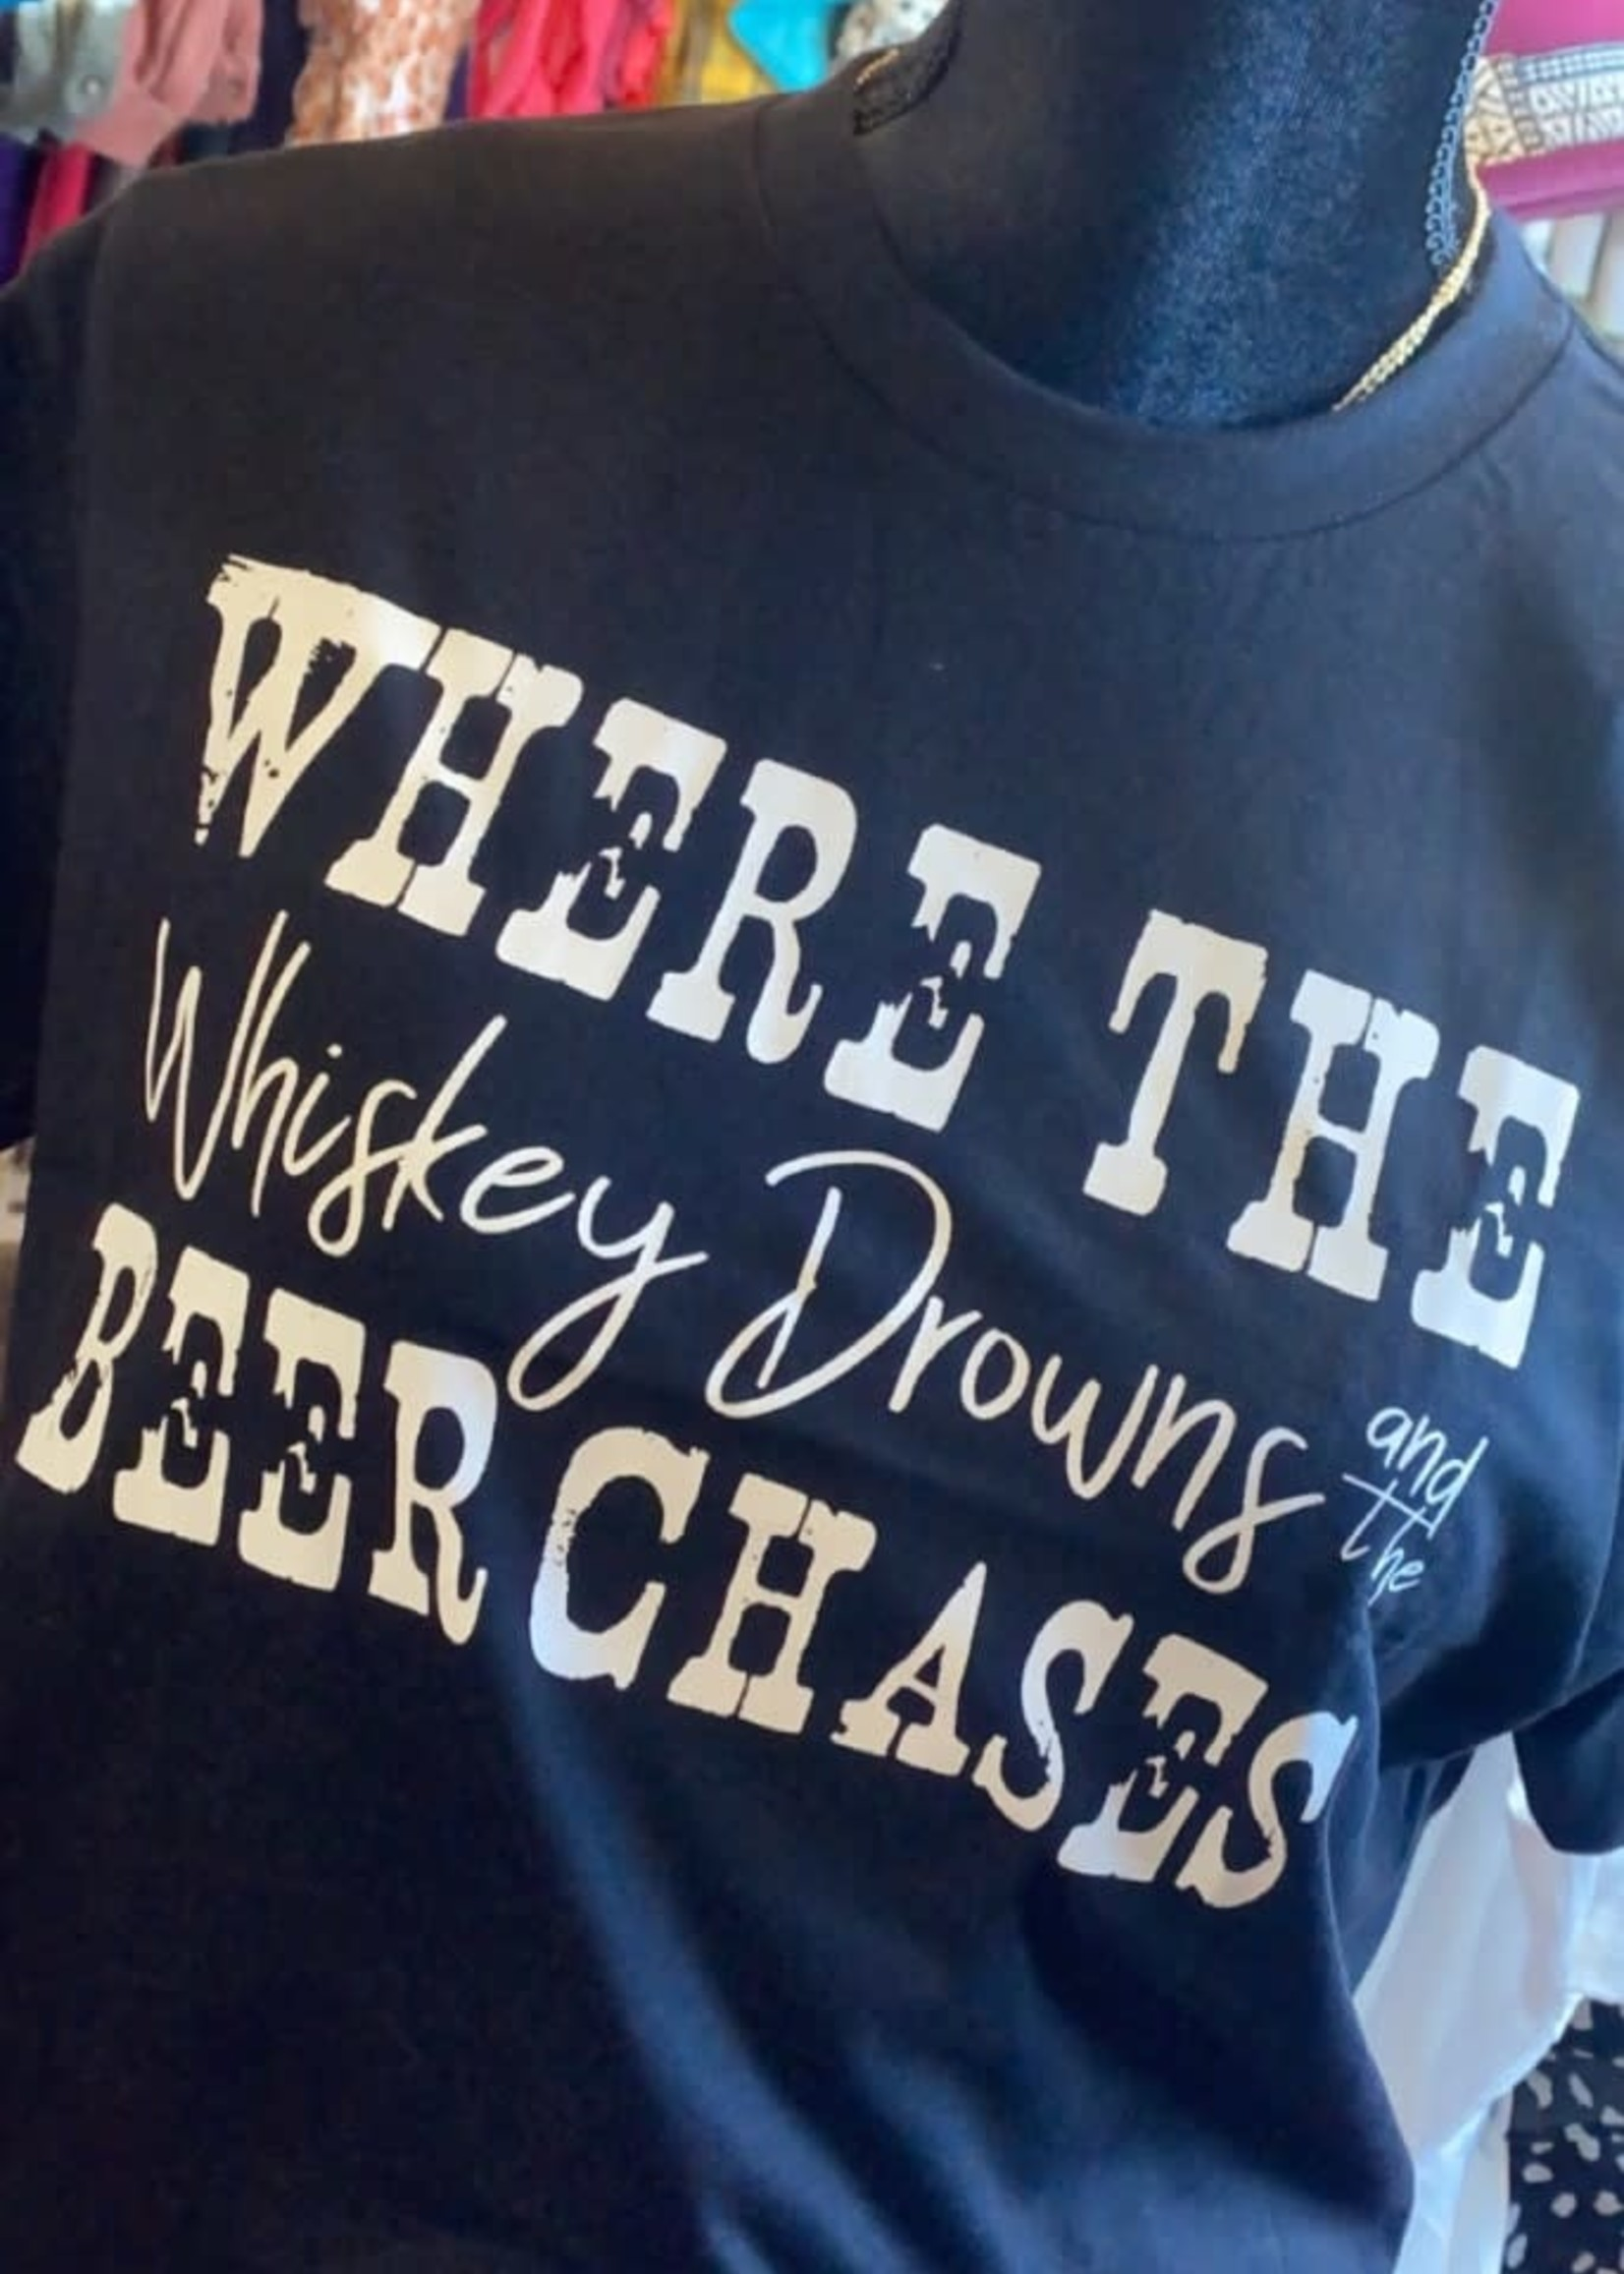 Where The Beer Chases